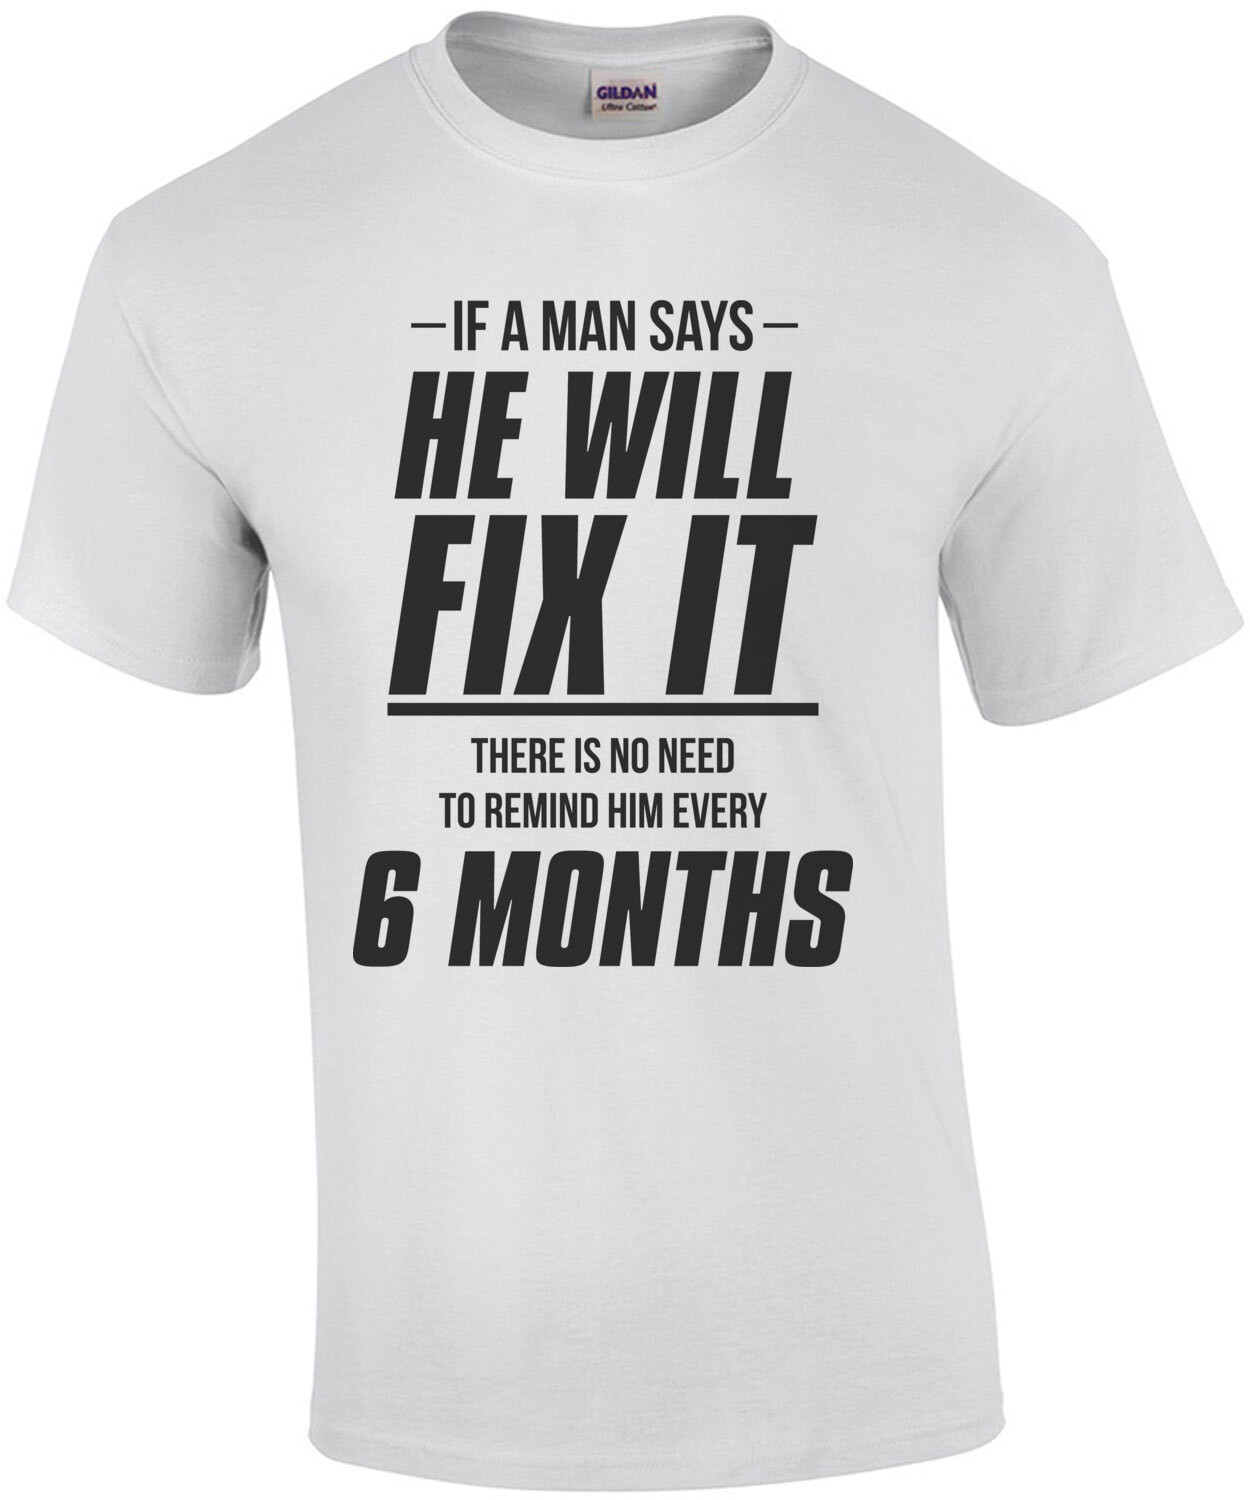 If a man says he will fix it there is no need to remind him every 6 months - funny marriage t-shirt